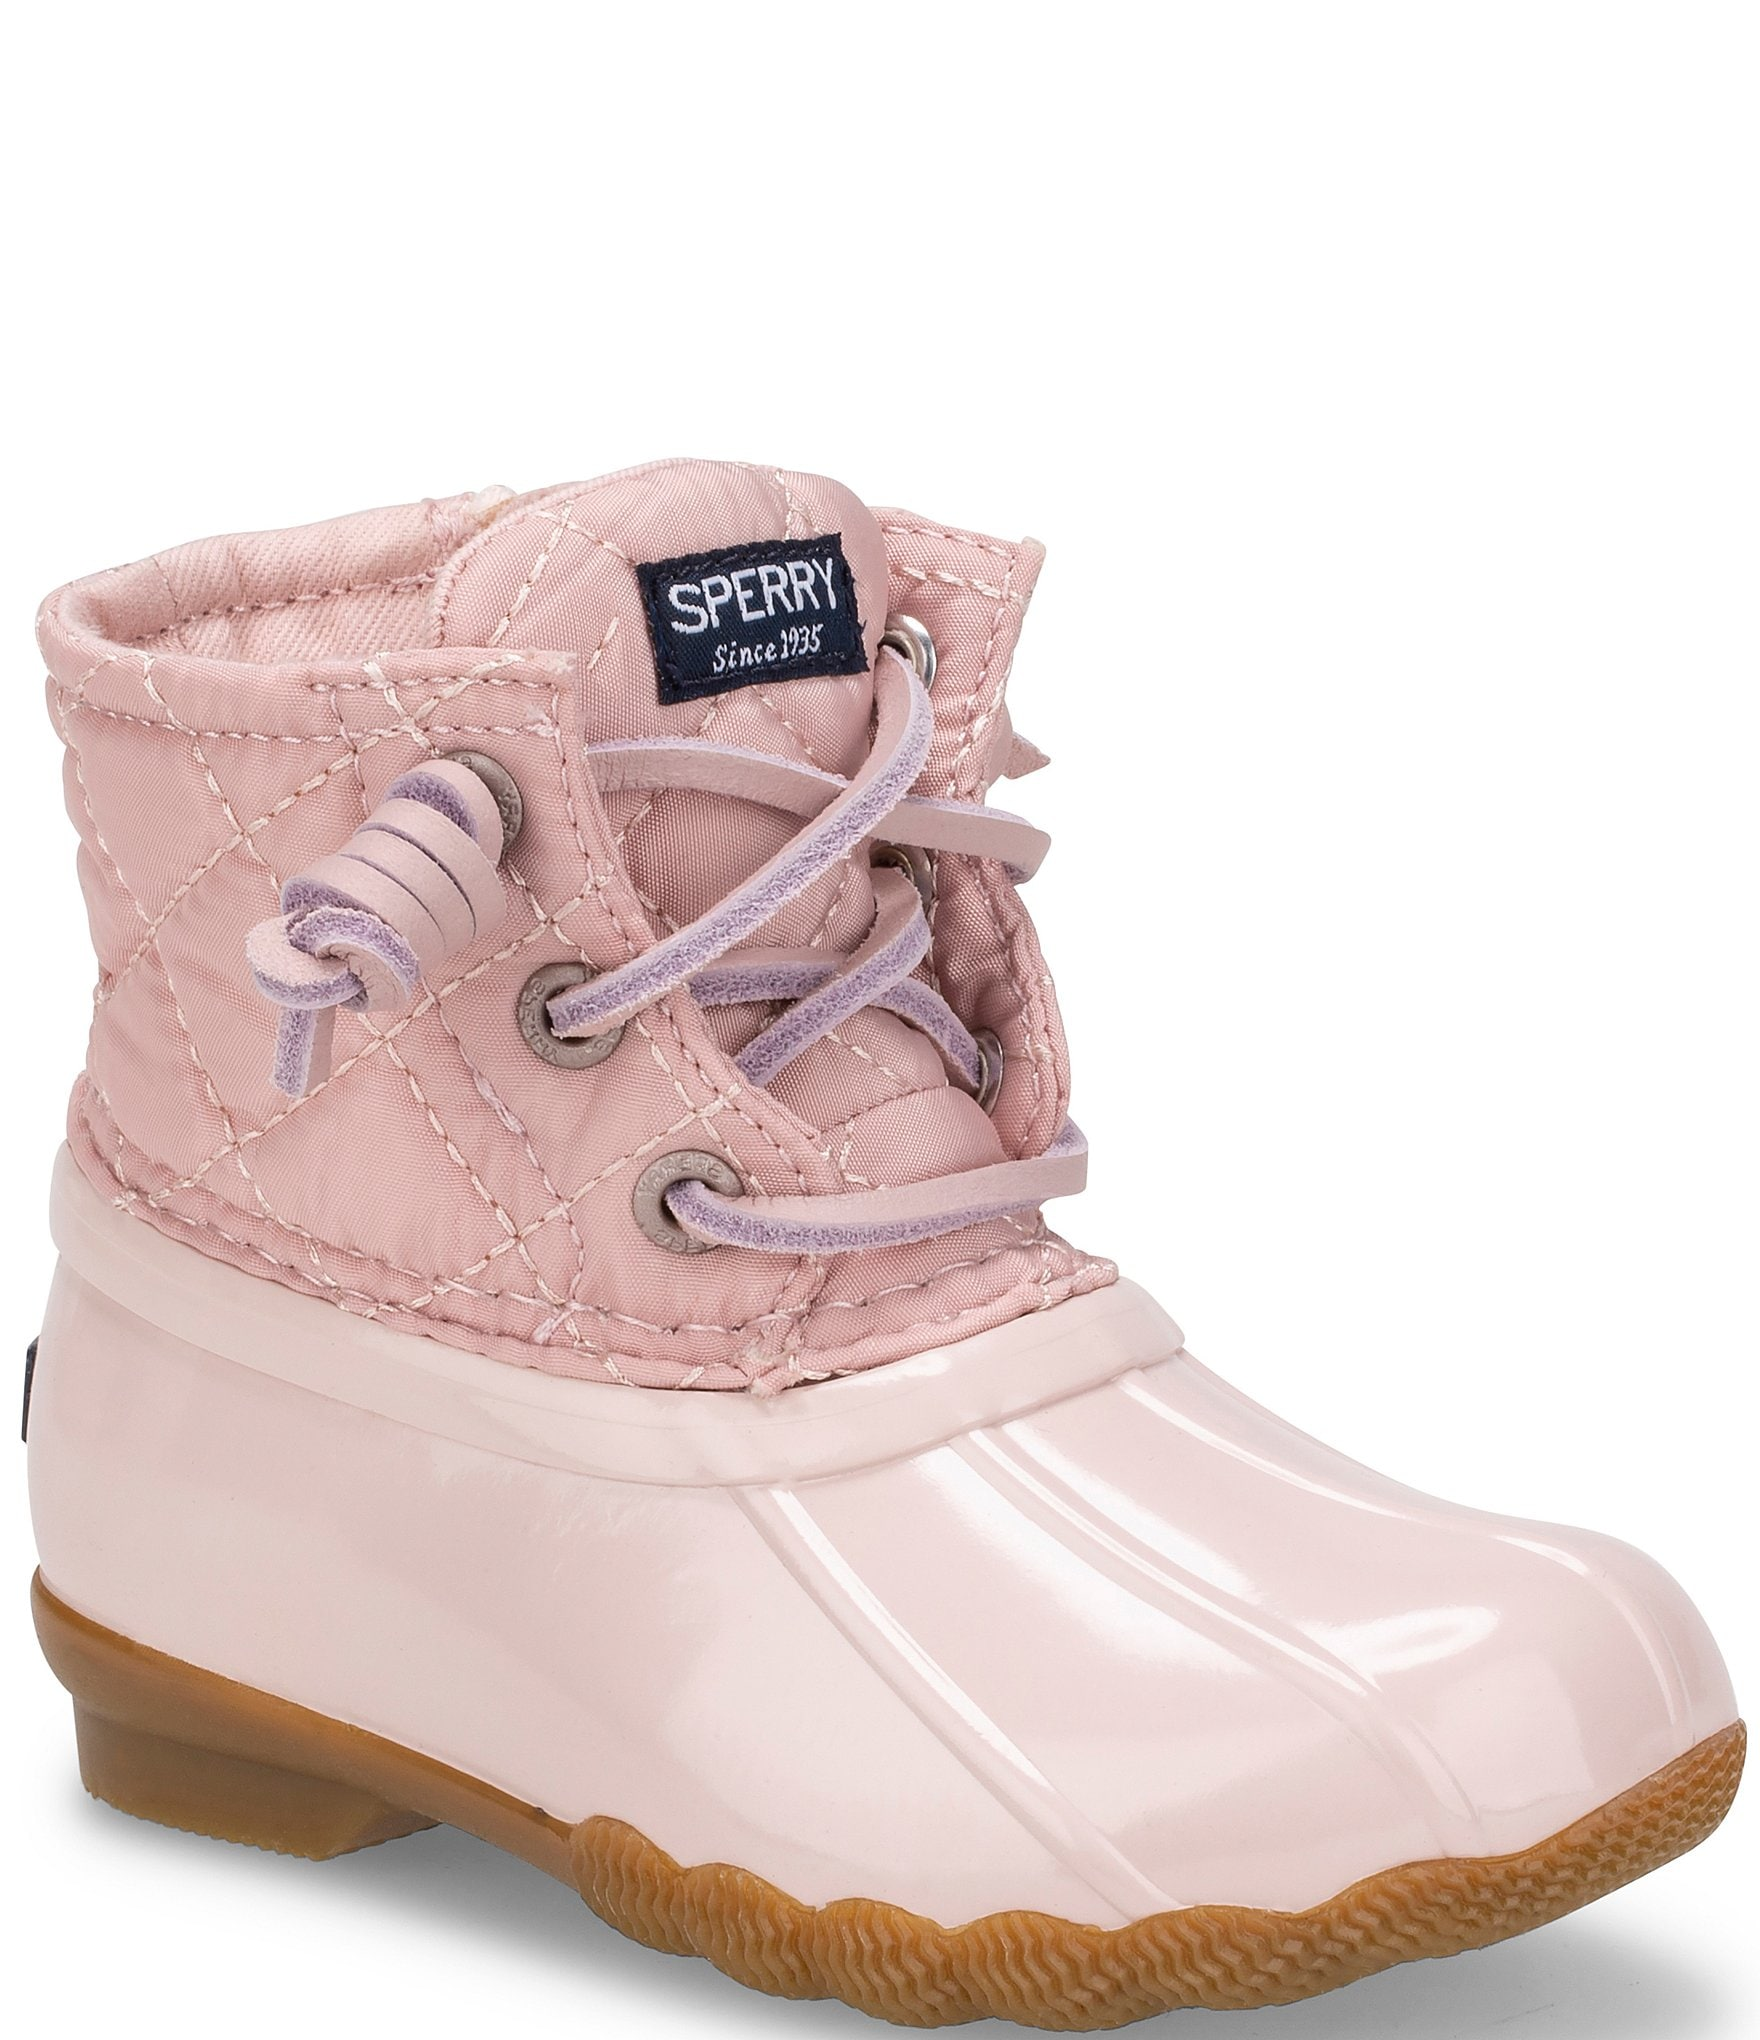 Sperry Girls' Quilted Saltwater Boots